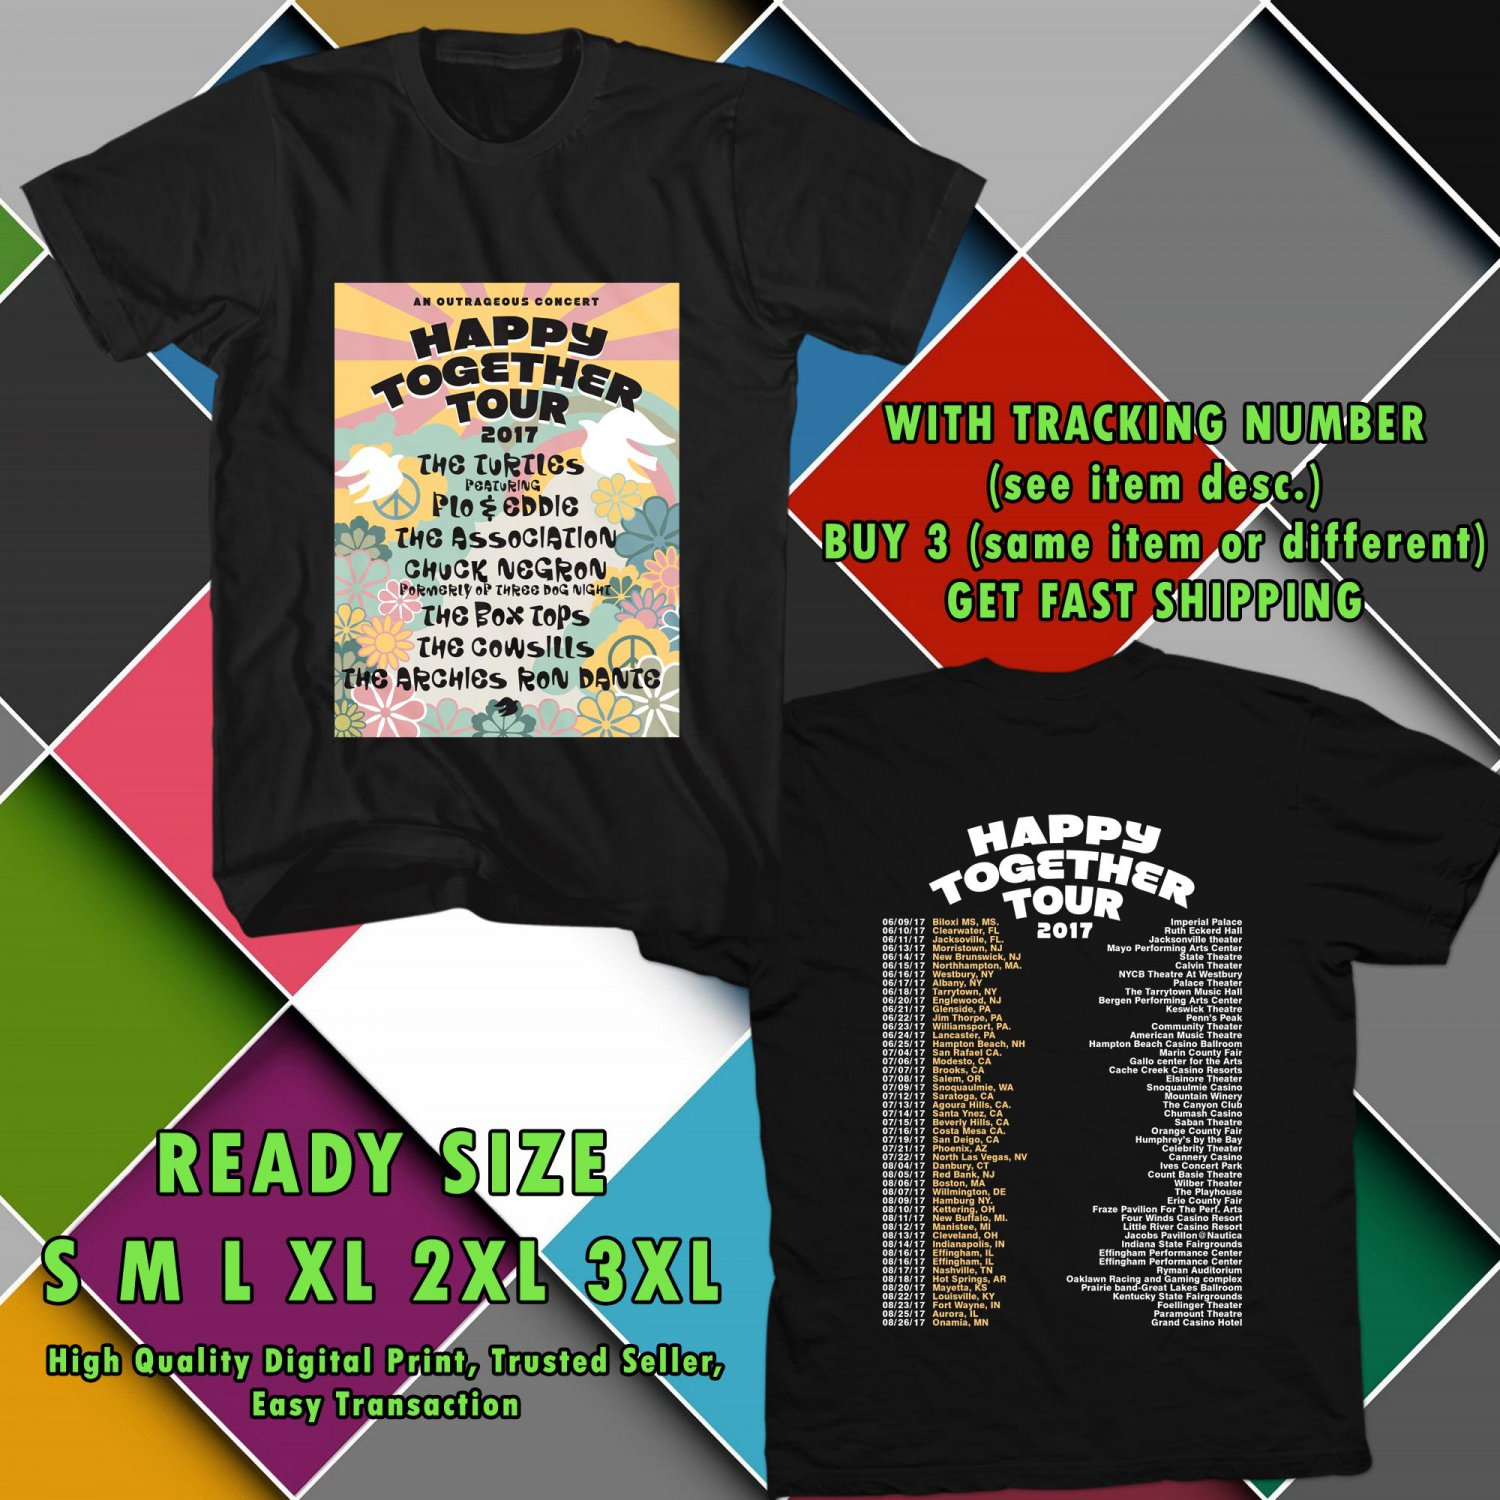 HITS HAPPY TOGETHER ON TOUR 2017 VARIOUS ARTIST BLACK TEE 2SIDE ASTR